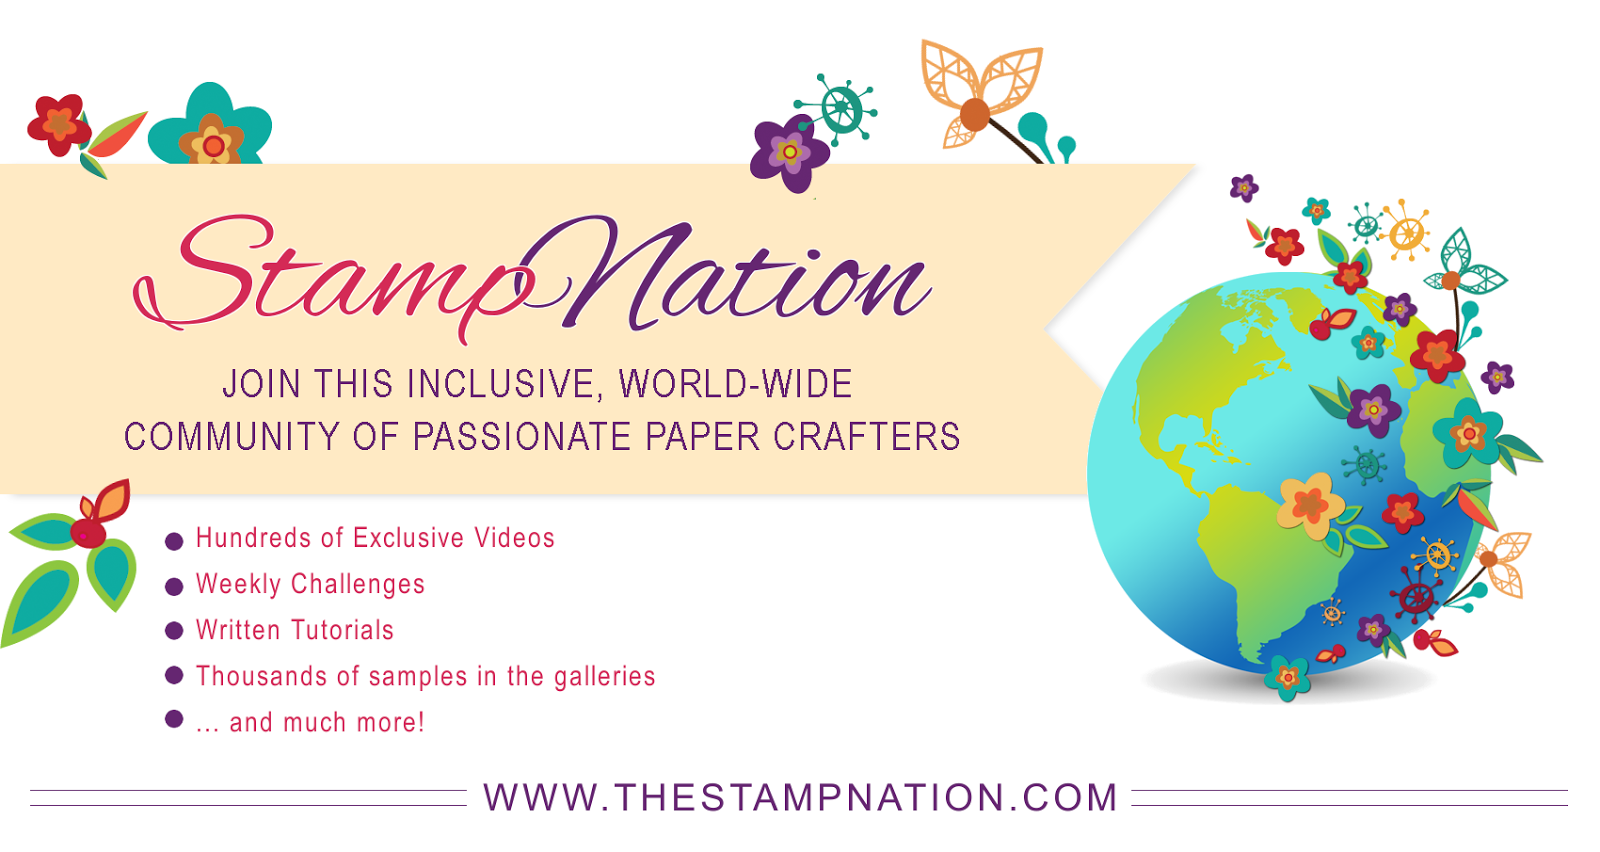 http://www.thestampnation.com/